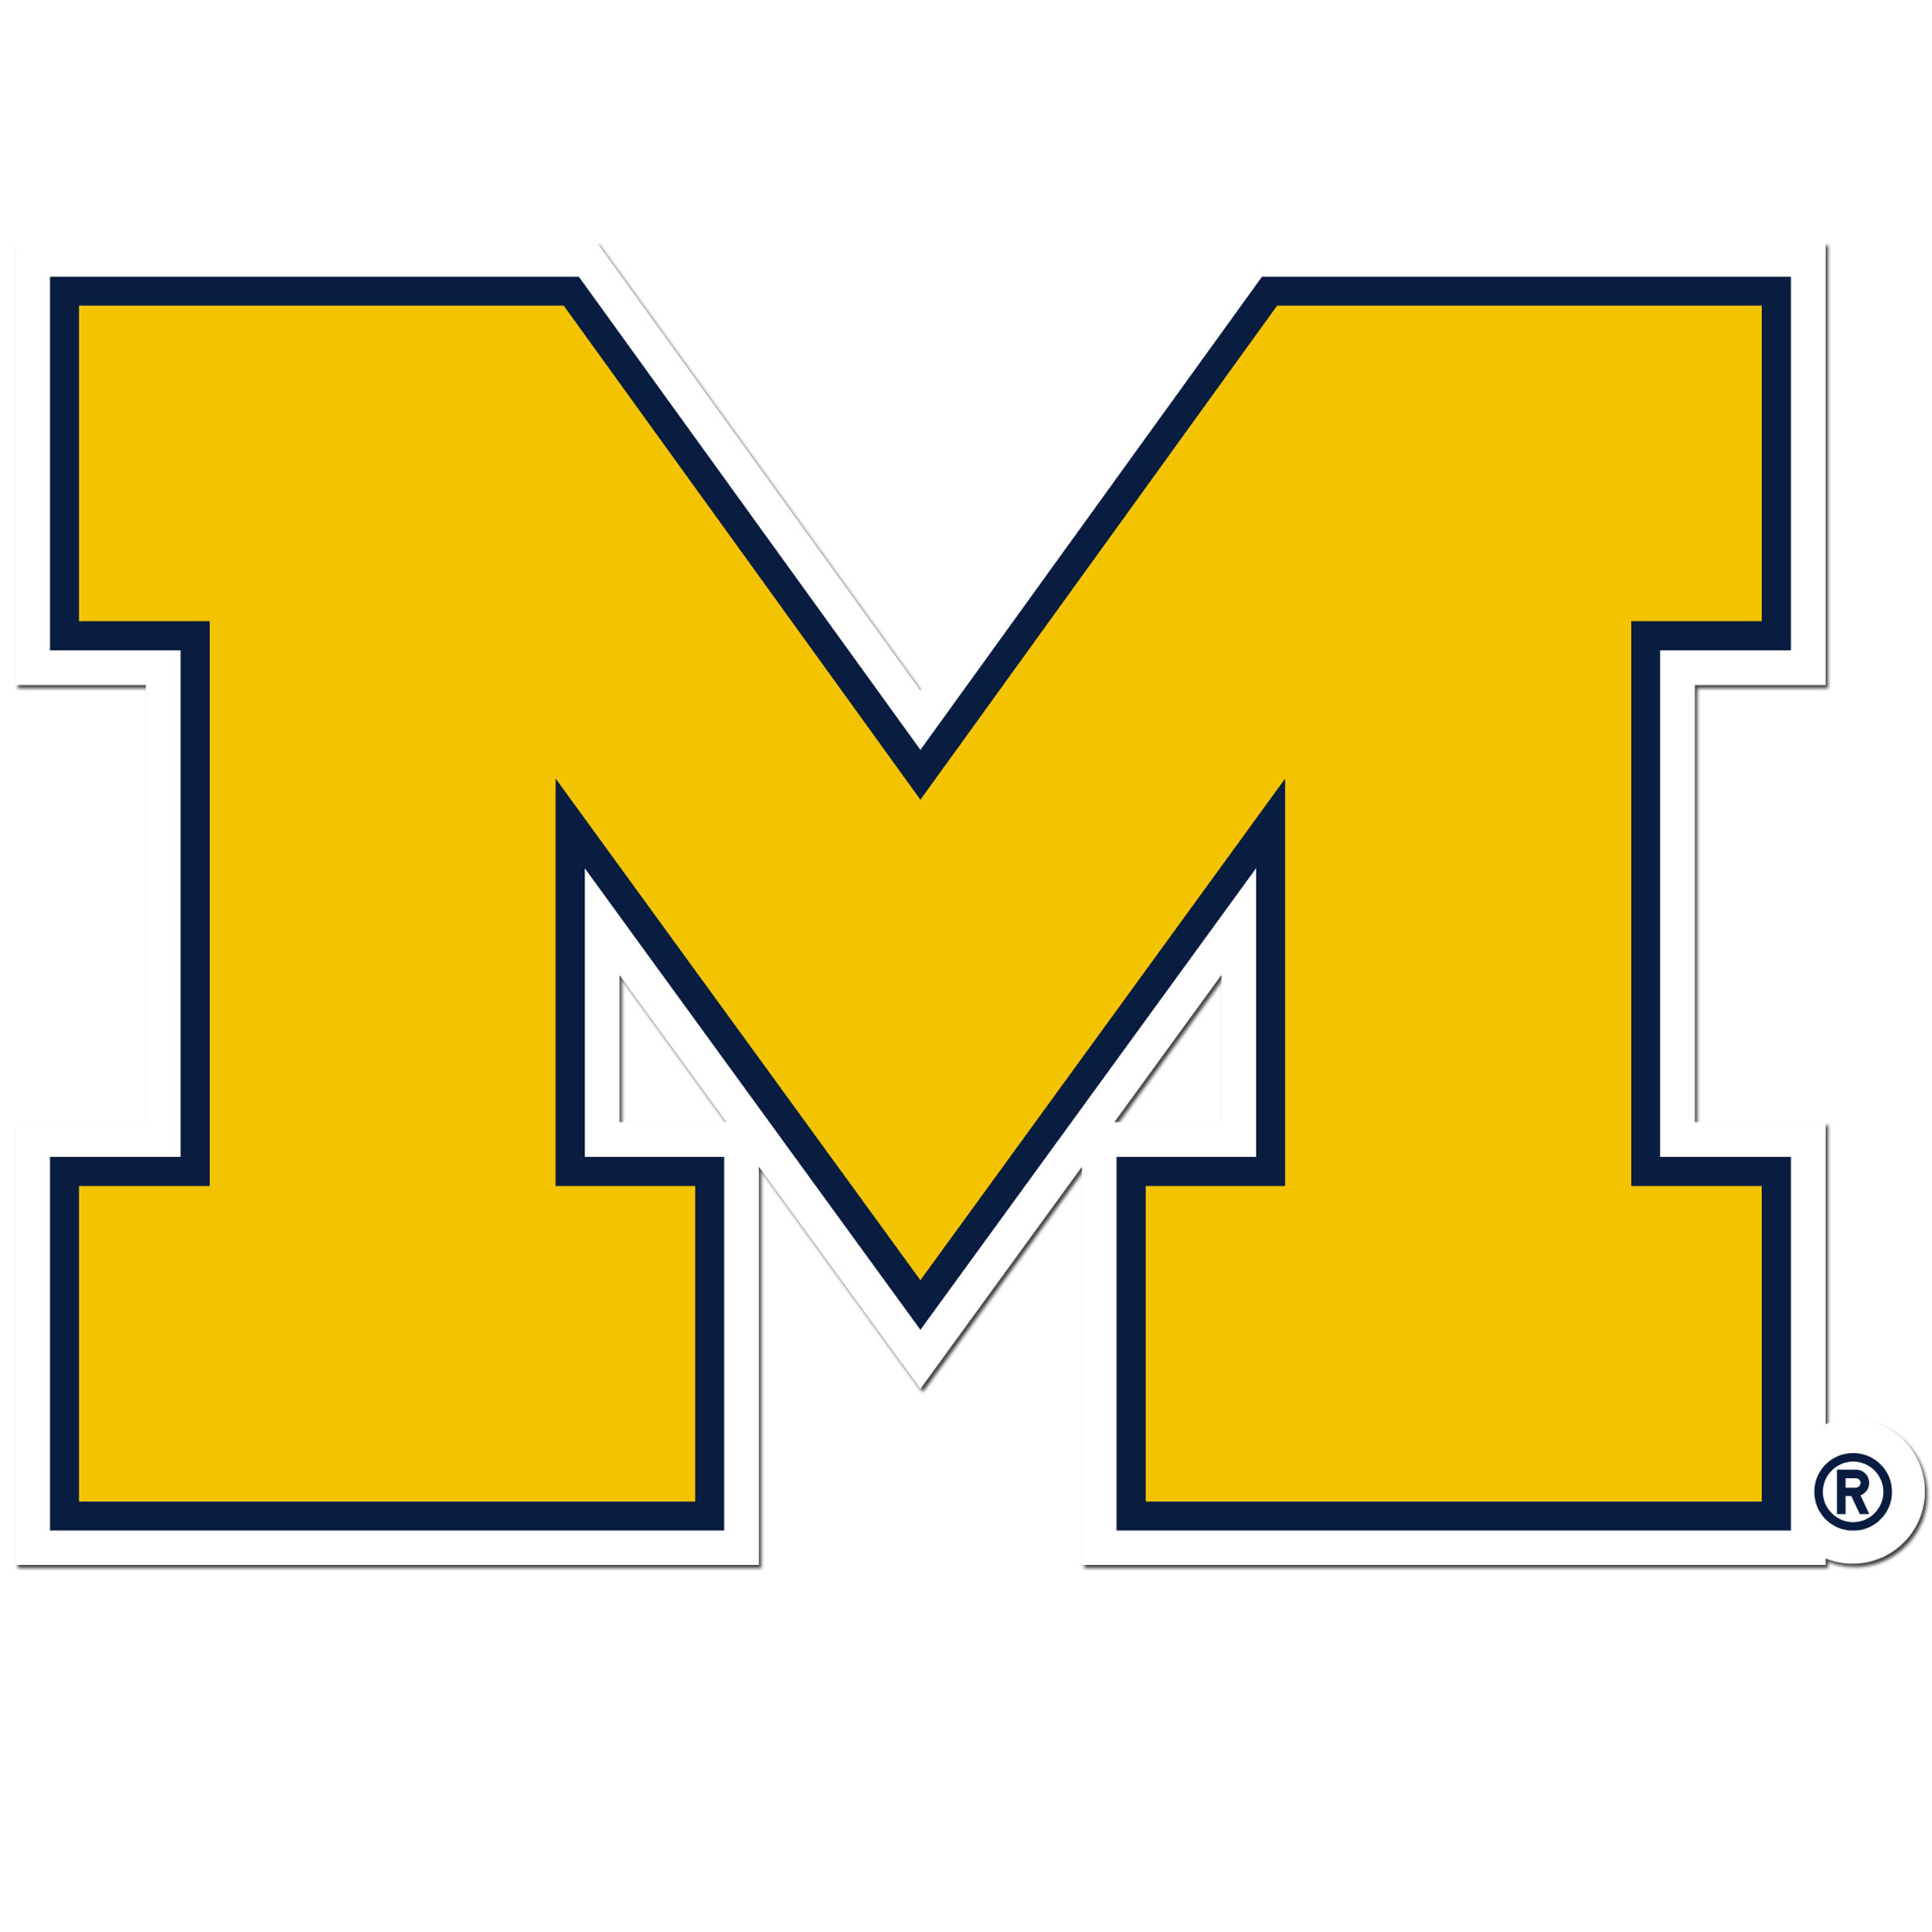 Michigan Wolverines 8 inch Auto Decal - This bold, 8 inch Michigan Wolverines is a great way to show off your team pride! The low tack vinyl decal is easily positioned and adjusted to make sure you get that logo in just the right spot on your vehicle. Designed to be used on the outside of the window.